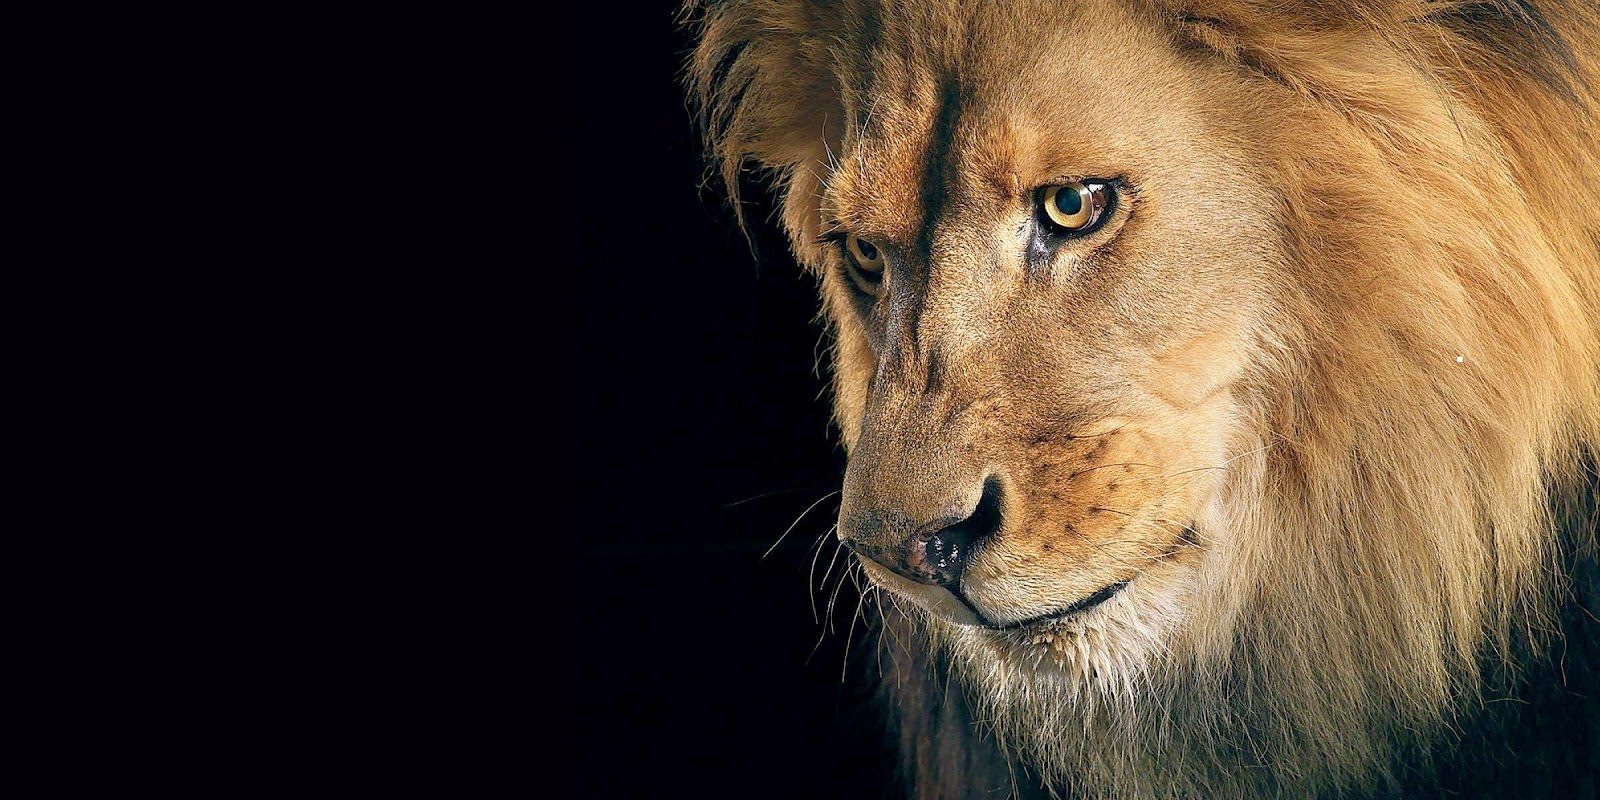 Sad Lion HD Wallpaper